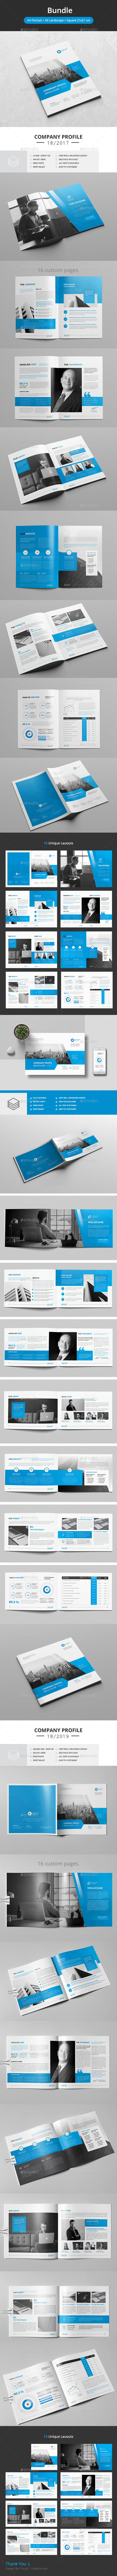 Company Brochure Bundle - Corporate Brochures